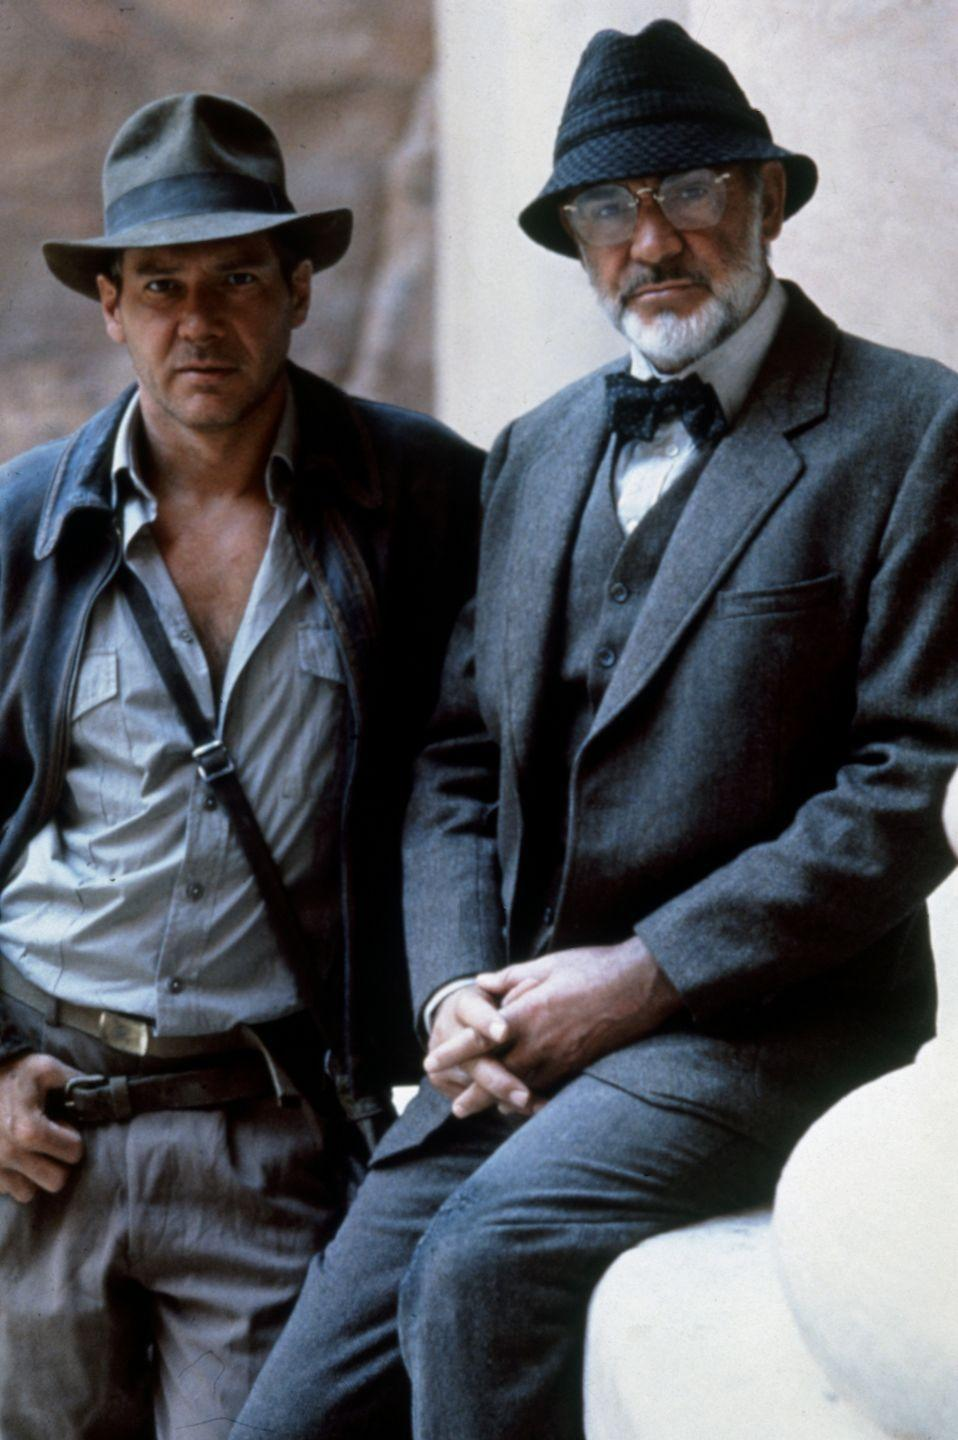 <p>Sean Connery as Indiana Jones's father Henry Jones in a publicity still for Indiana Jones and the Last Crusade, 1989</p>